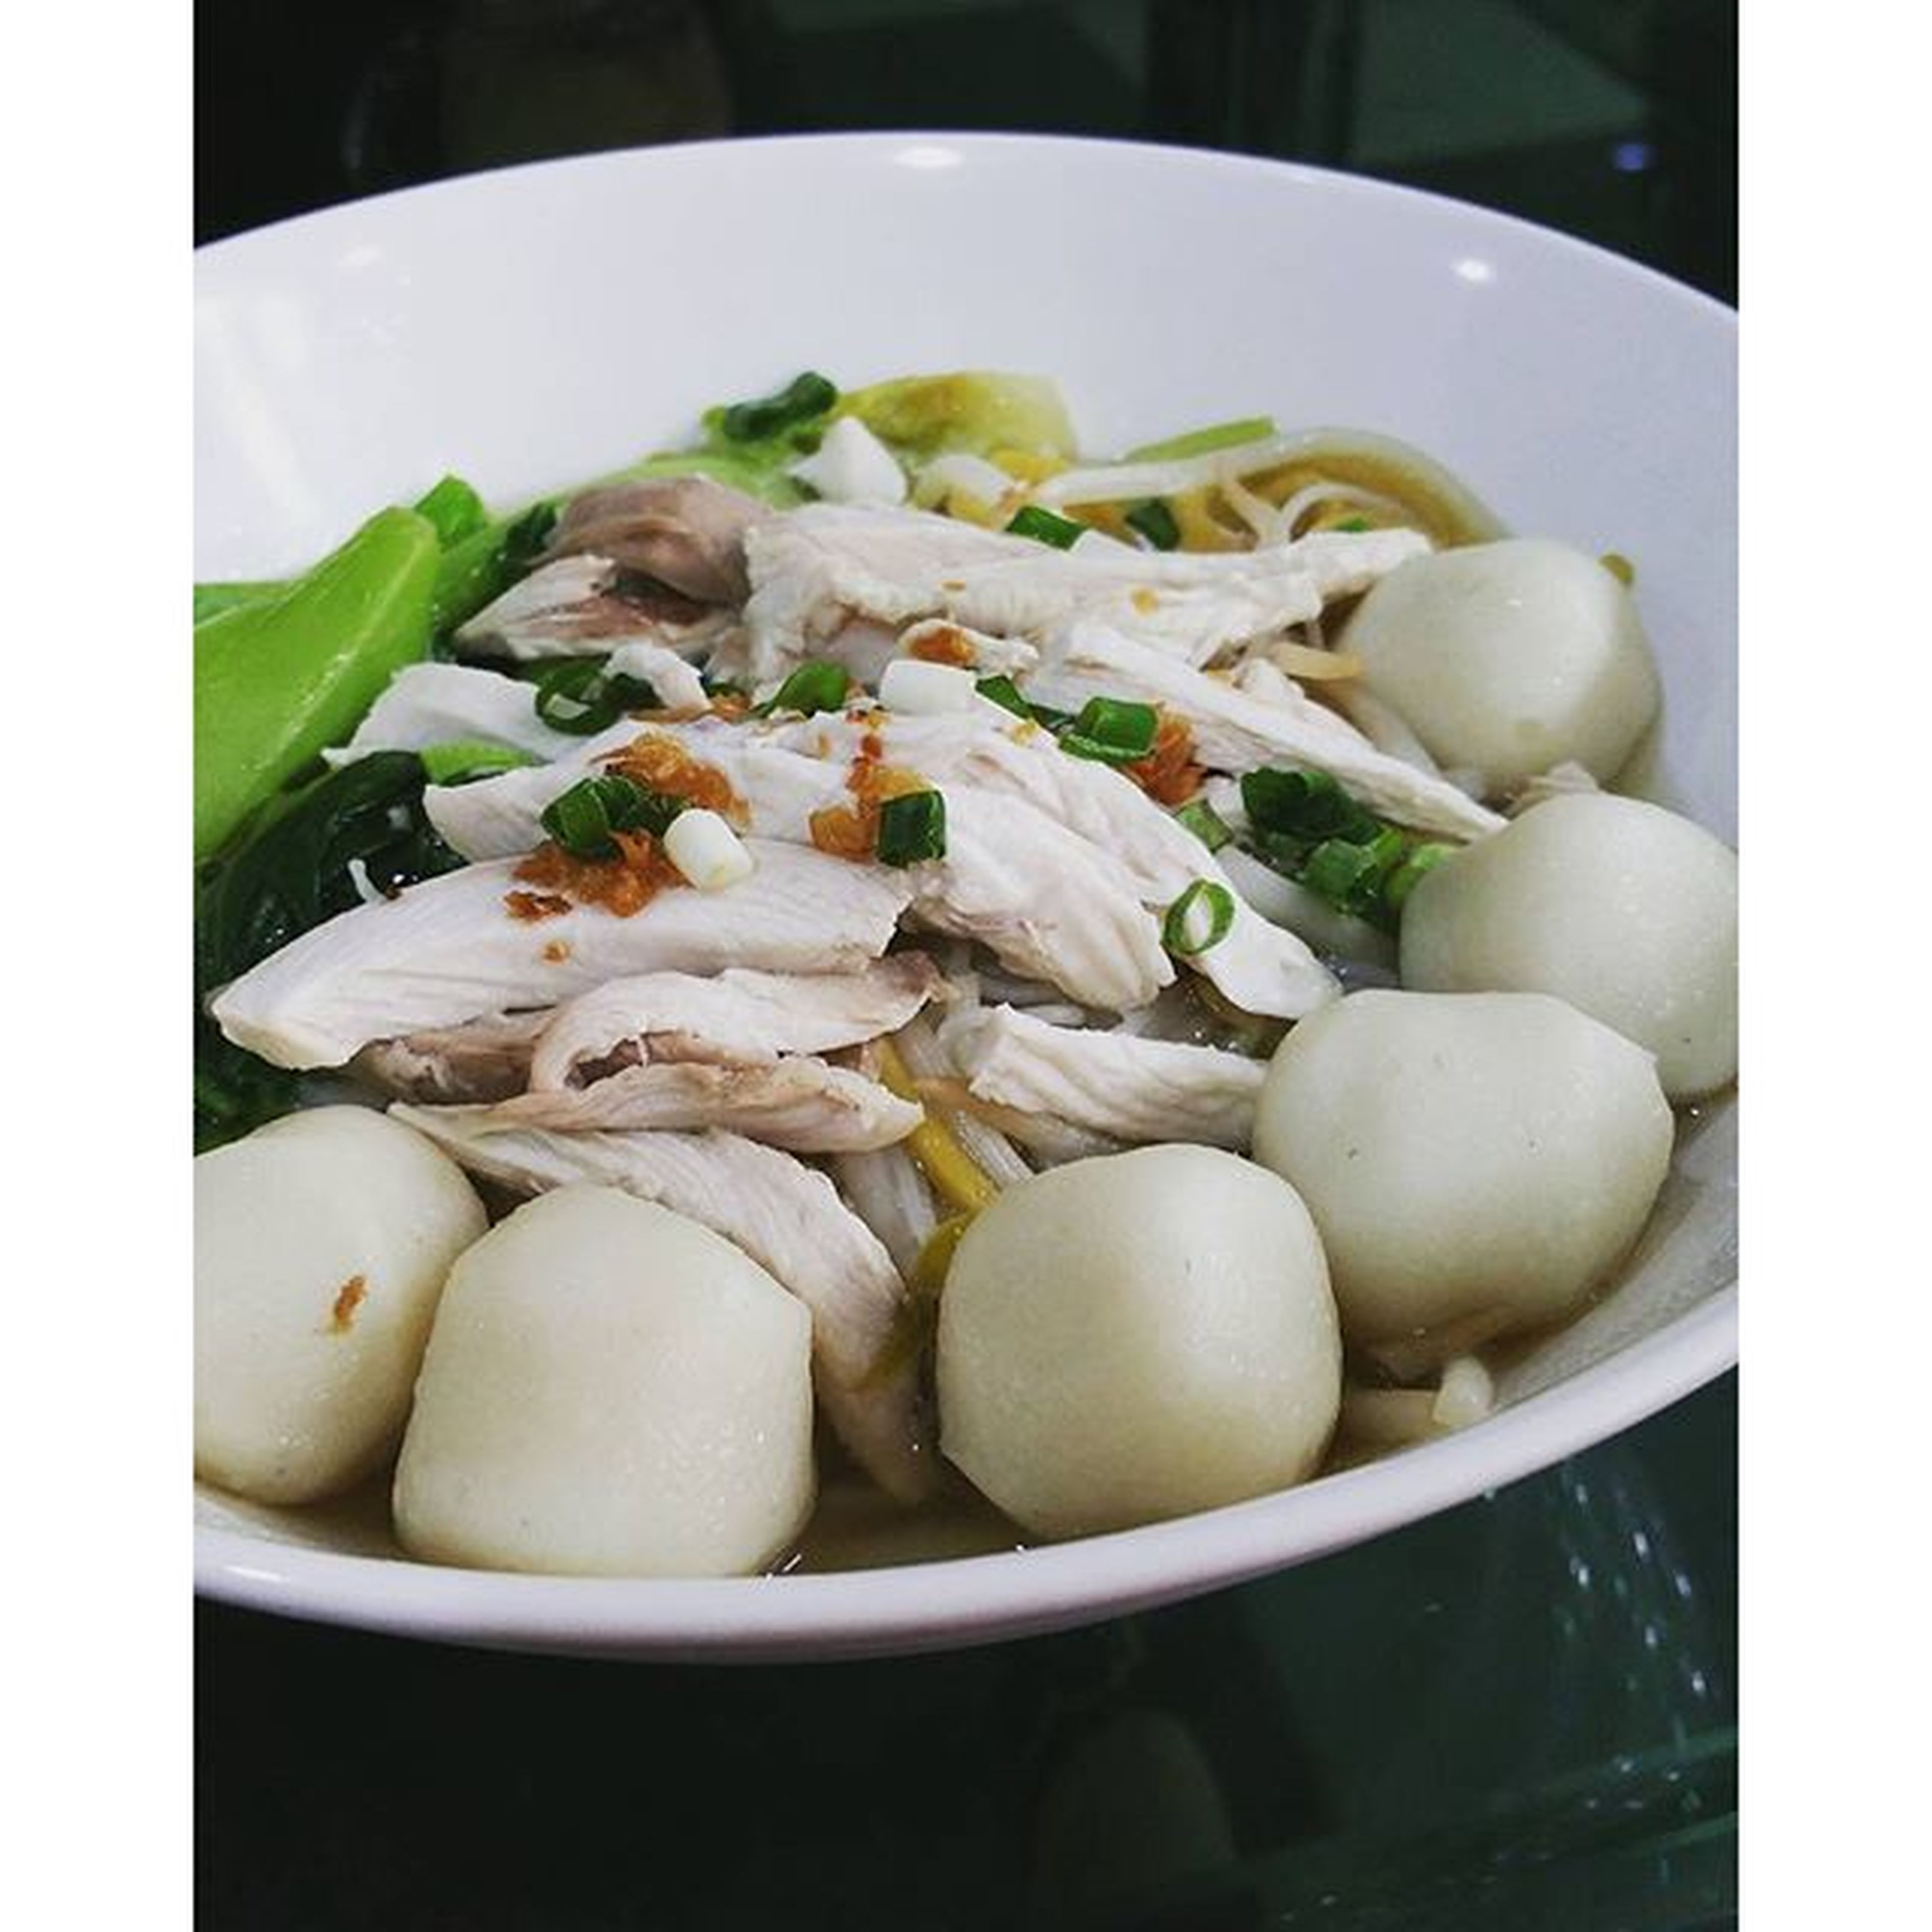 A simple fishballs noodle soup from Tan's Food Court, a fairly new food court. Variety of food stalls in one location serving different food, Singapore/Malaysian, dim sum, Indonesian, Malay hawker food, a stall serving roast meat (roast ducks). There are still a few remaining stalls yet to be opened. Asiandelights Tansfoodcourt Fishballnoodlesoup Perthfood perthfoodie perthfoodadventures pertheats perthisok perthpop perthbites perthgrub perthgram perthfoodreview happyperth thefoodie thefoodiehub foodpics foodphotography foodporn foodperth foodadventures instafoodie igfoodie igfoods ozeatingwa zomatoaus yelpperth